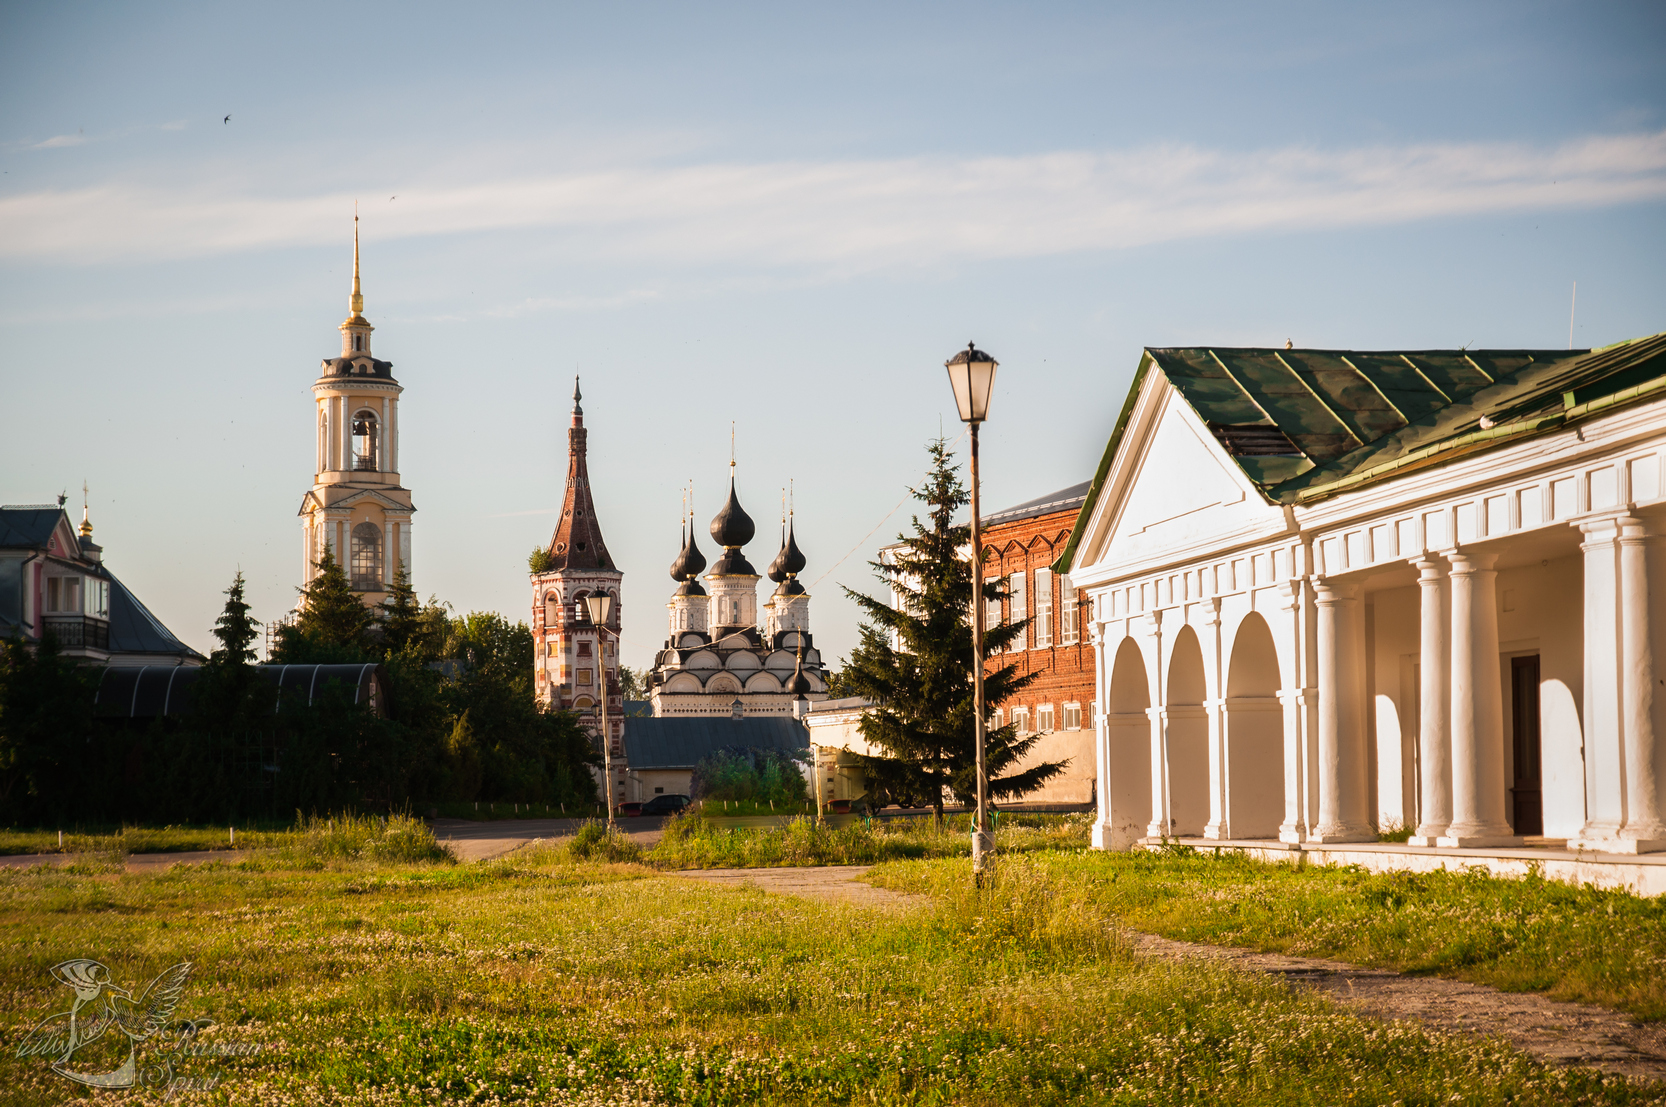 Vladimir-Suzdal principality: culture, architecture, chronicles, history 58